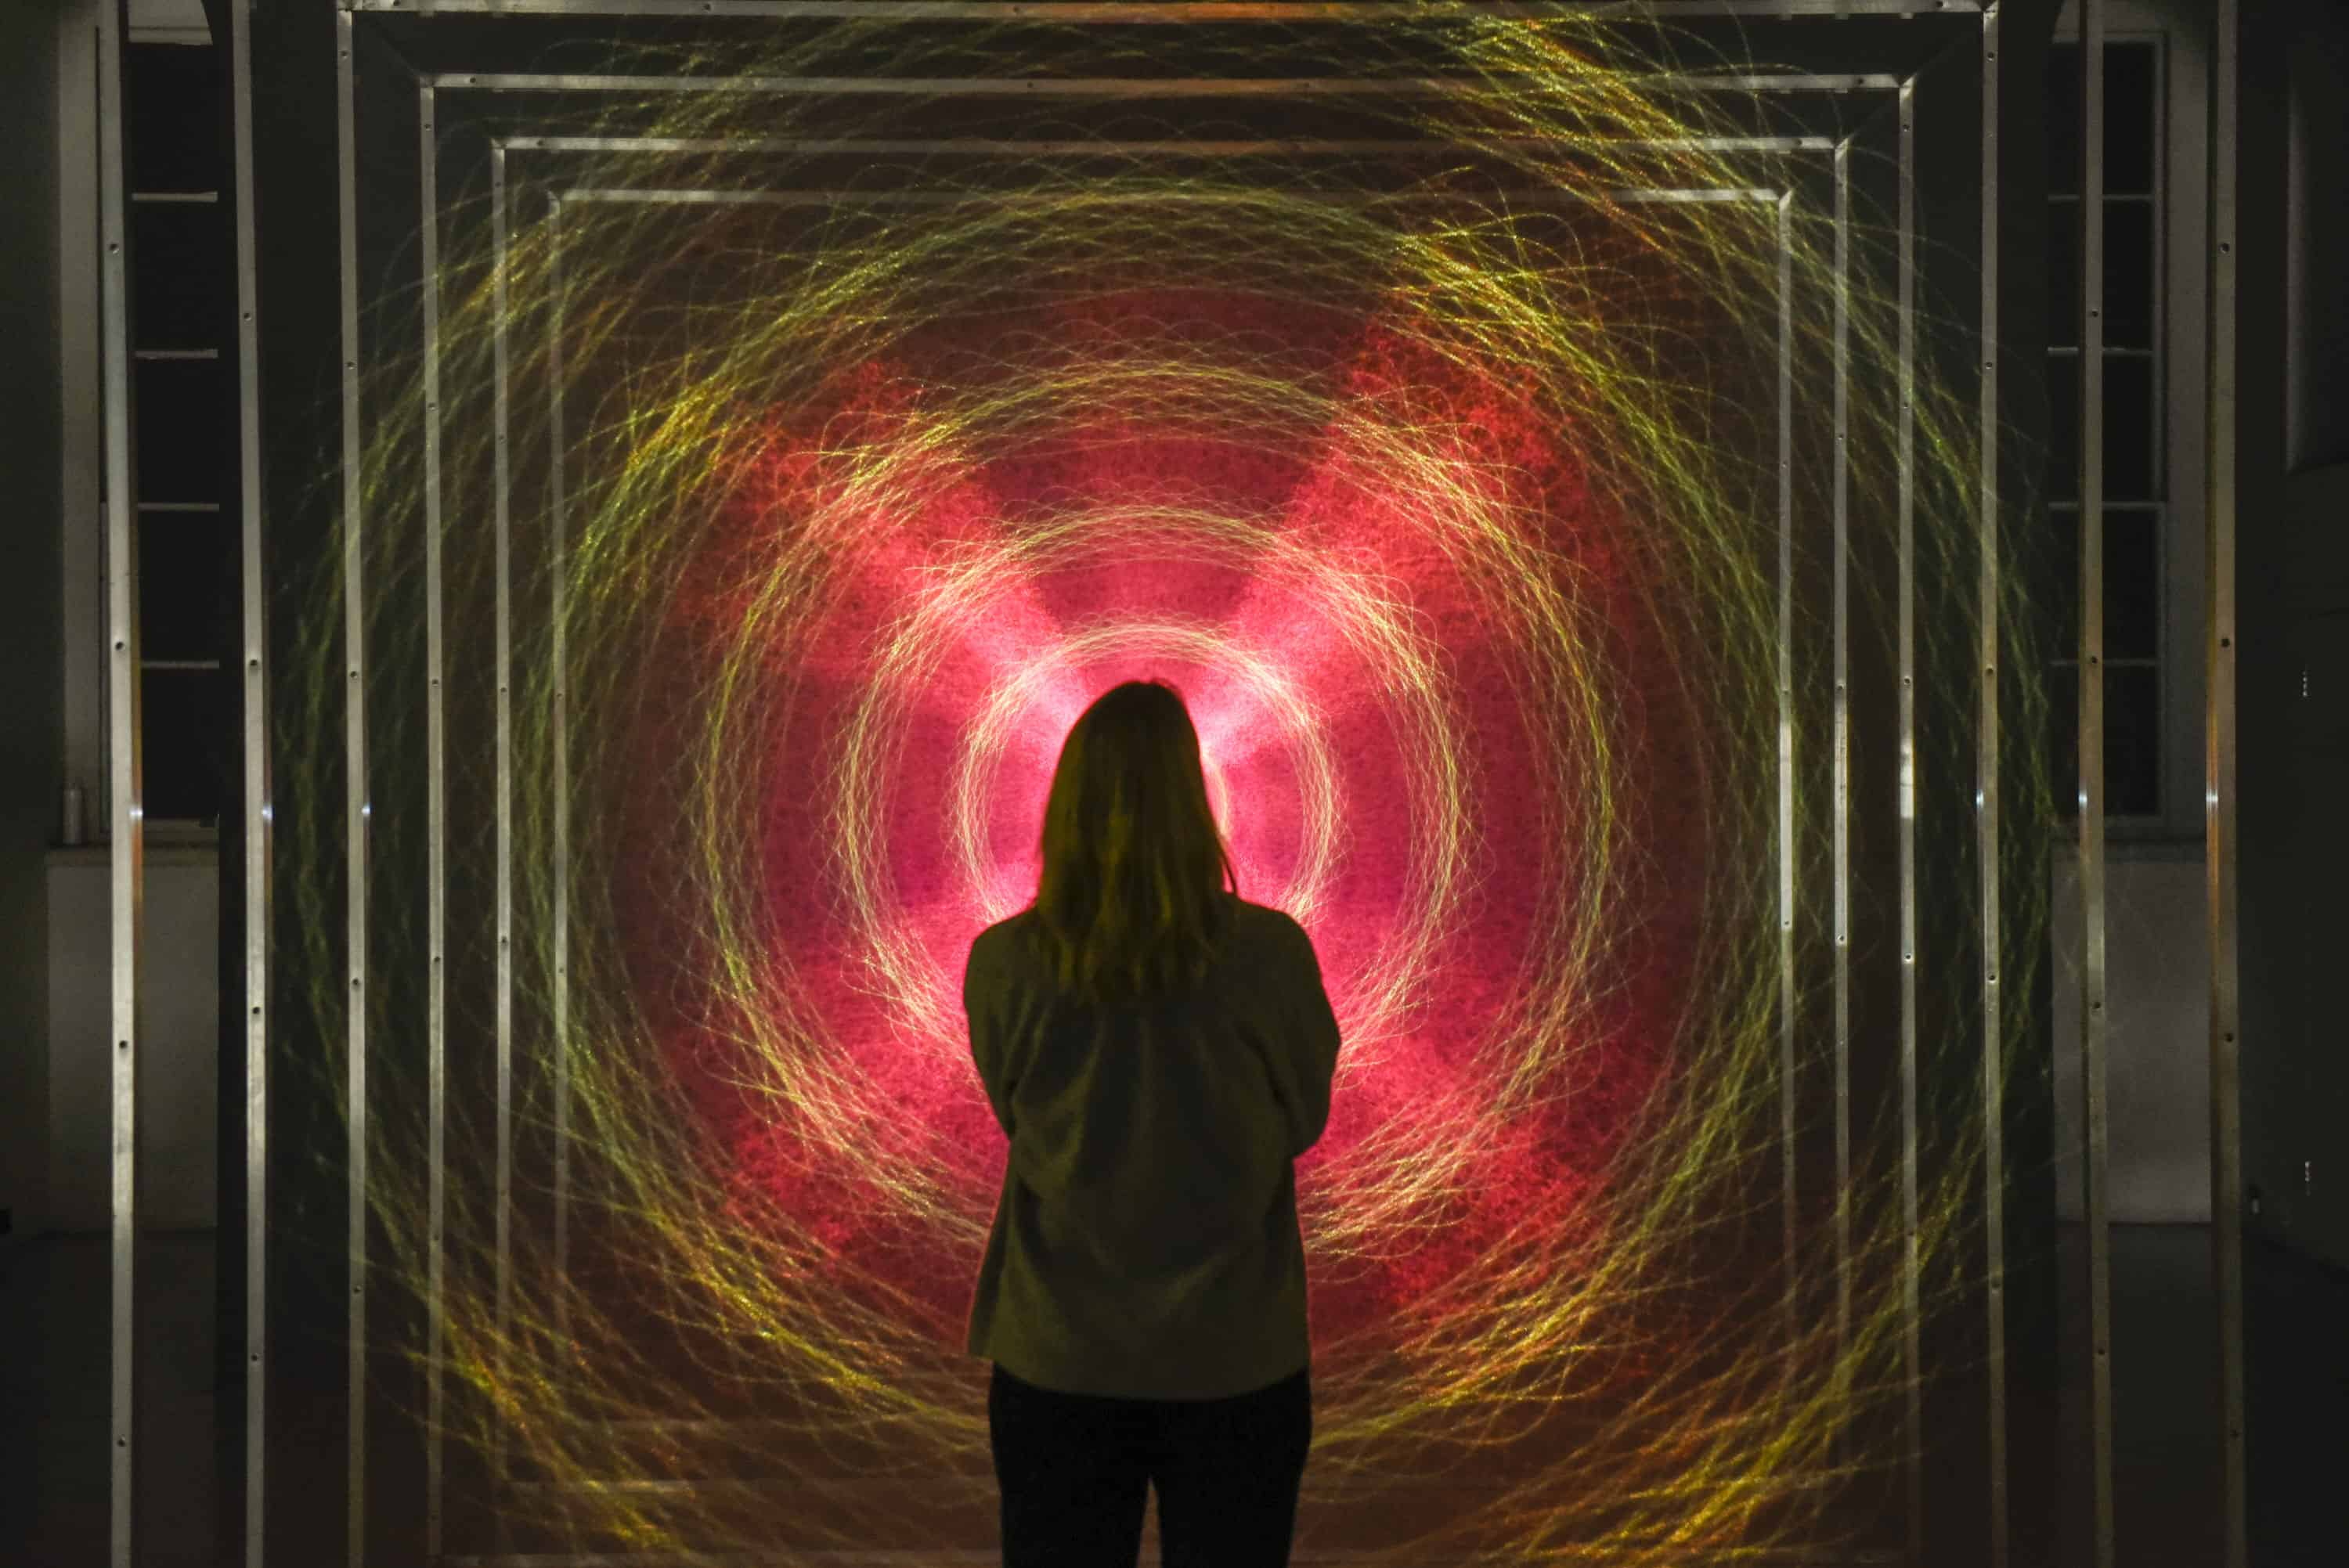 Installation view of Tekja, Awake, 2019 at 24/7 at Somerset House, Copyright Stephen Chung for Somerset House.